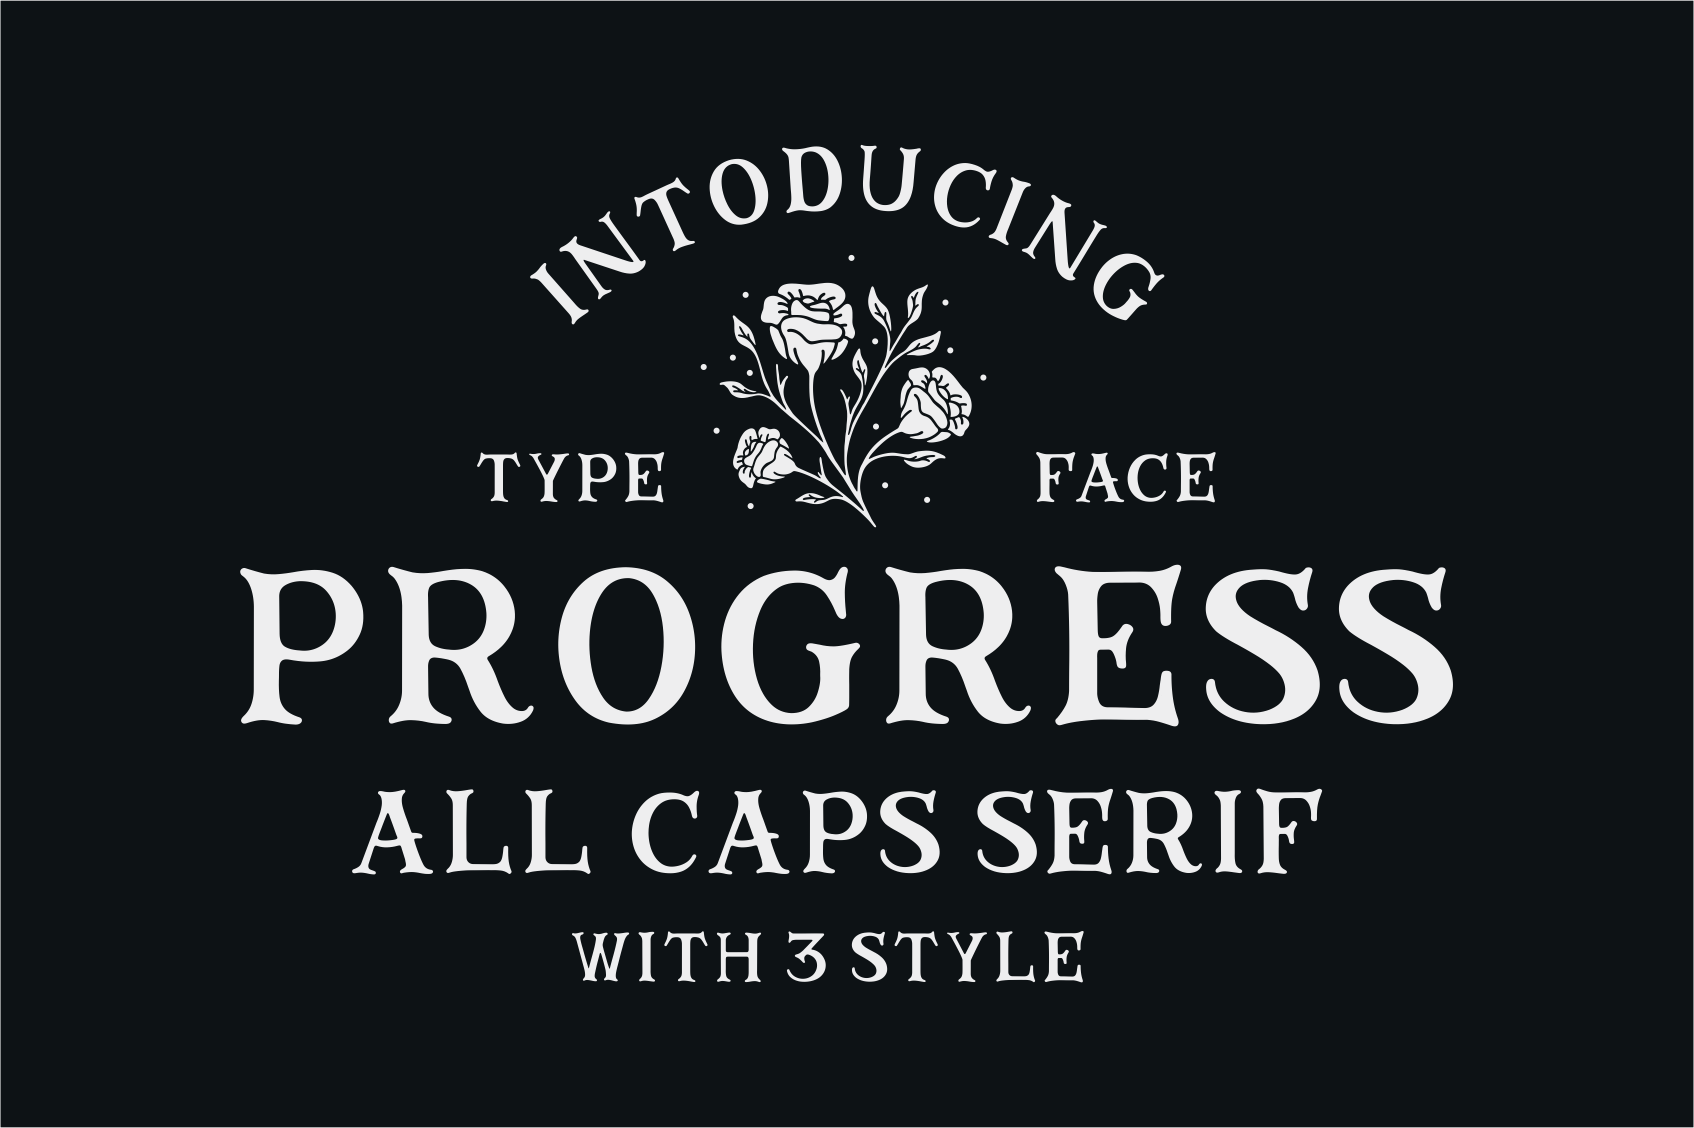 Progress is all caps typeface font serif is inspired by